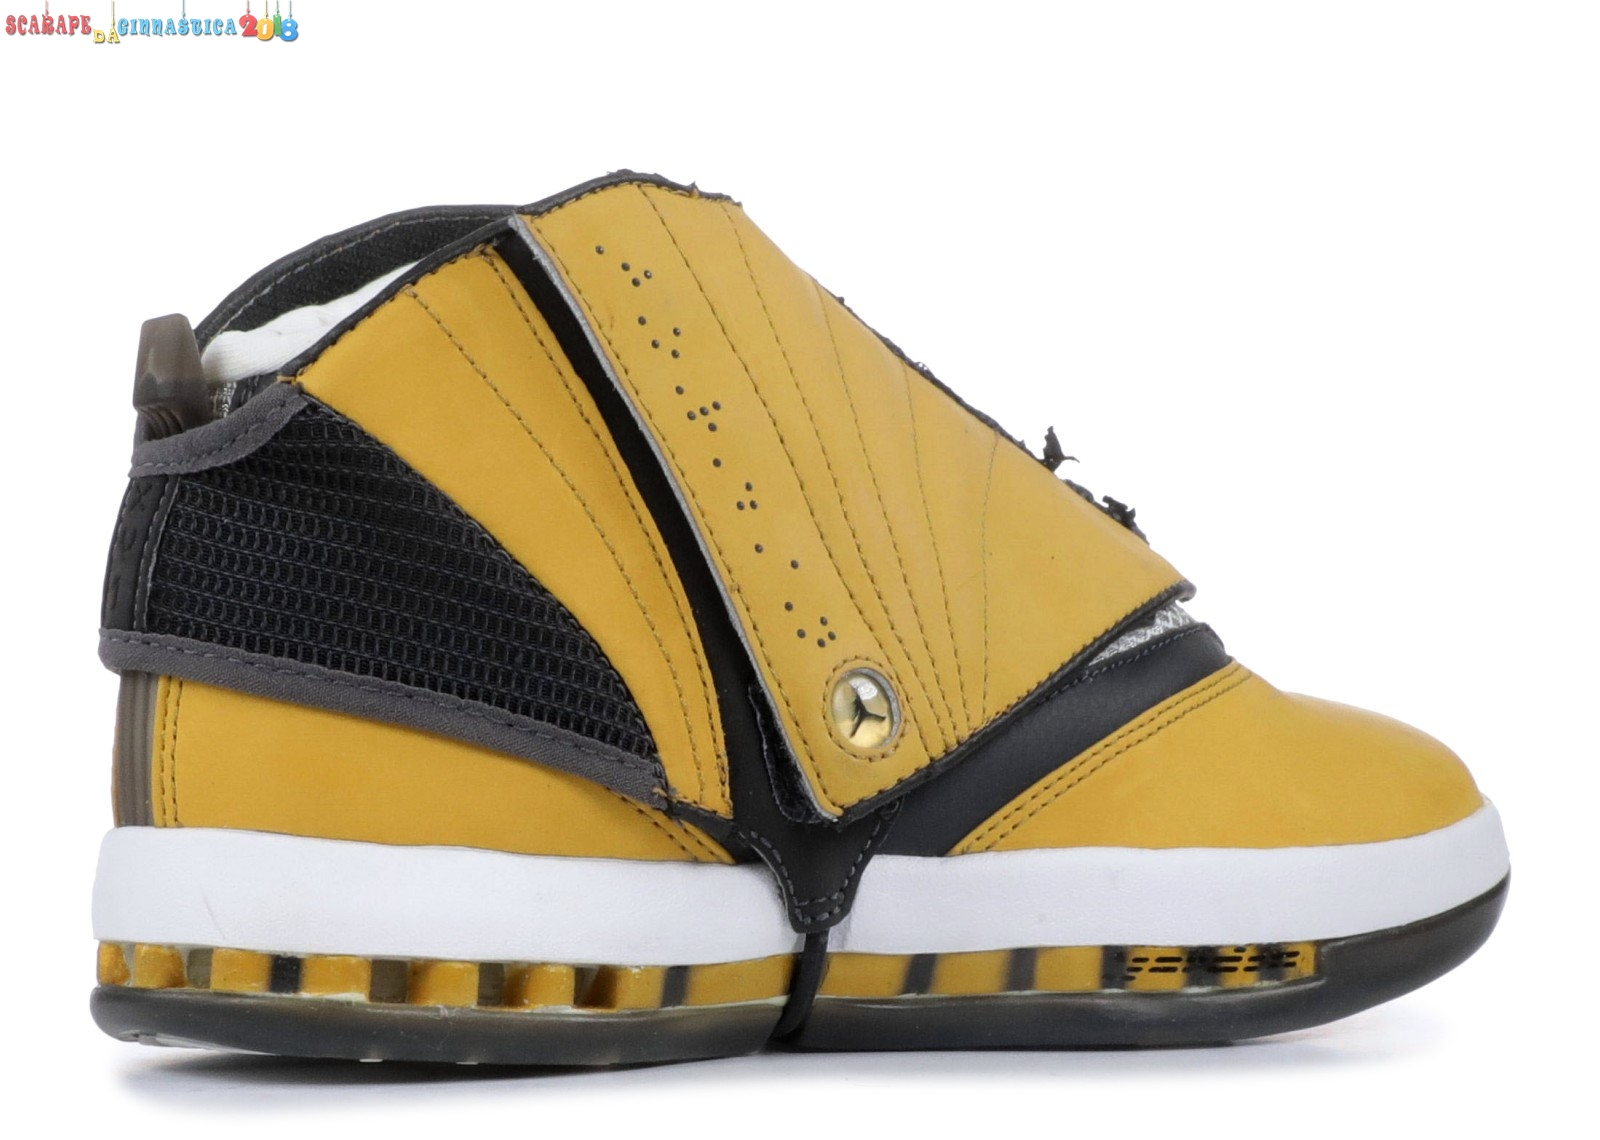 Buy Air Jordan 16 + Q Gs Marrone (834030-701) - scarpe basket migliori